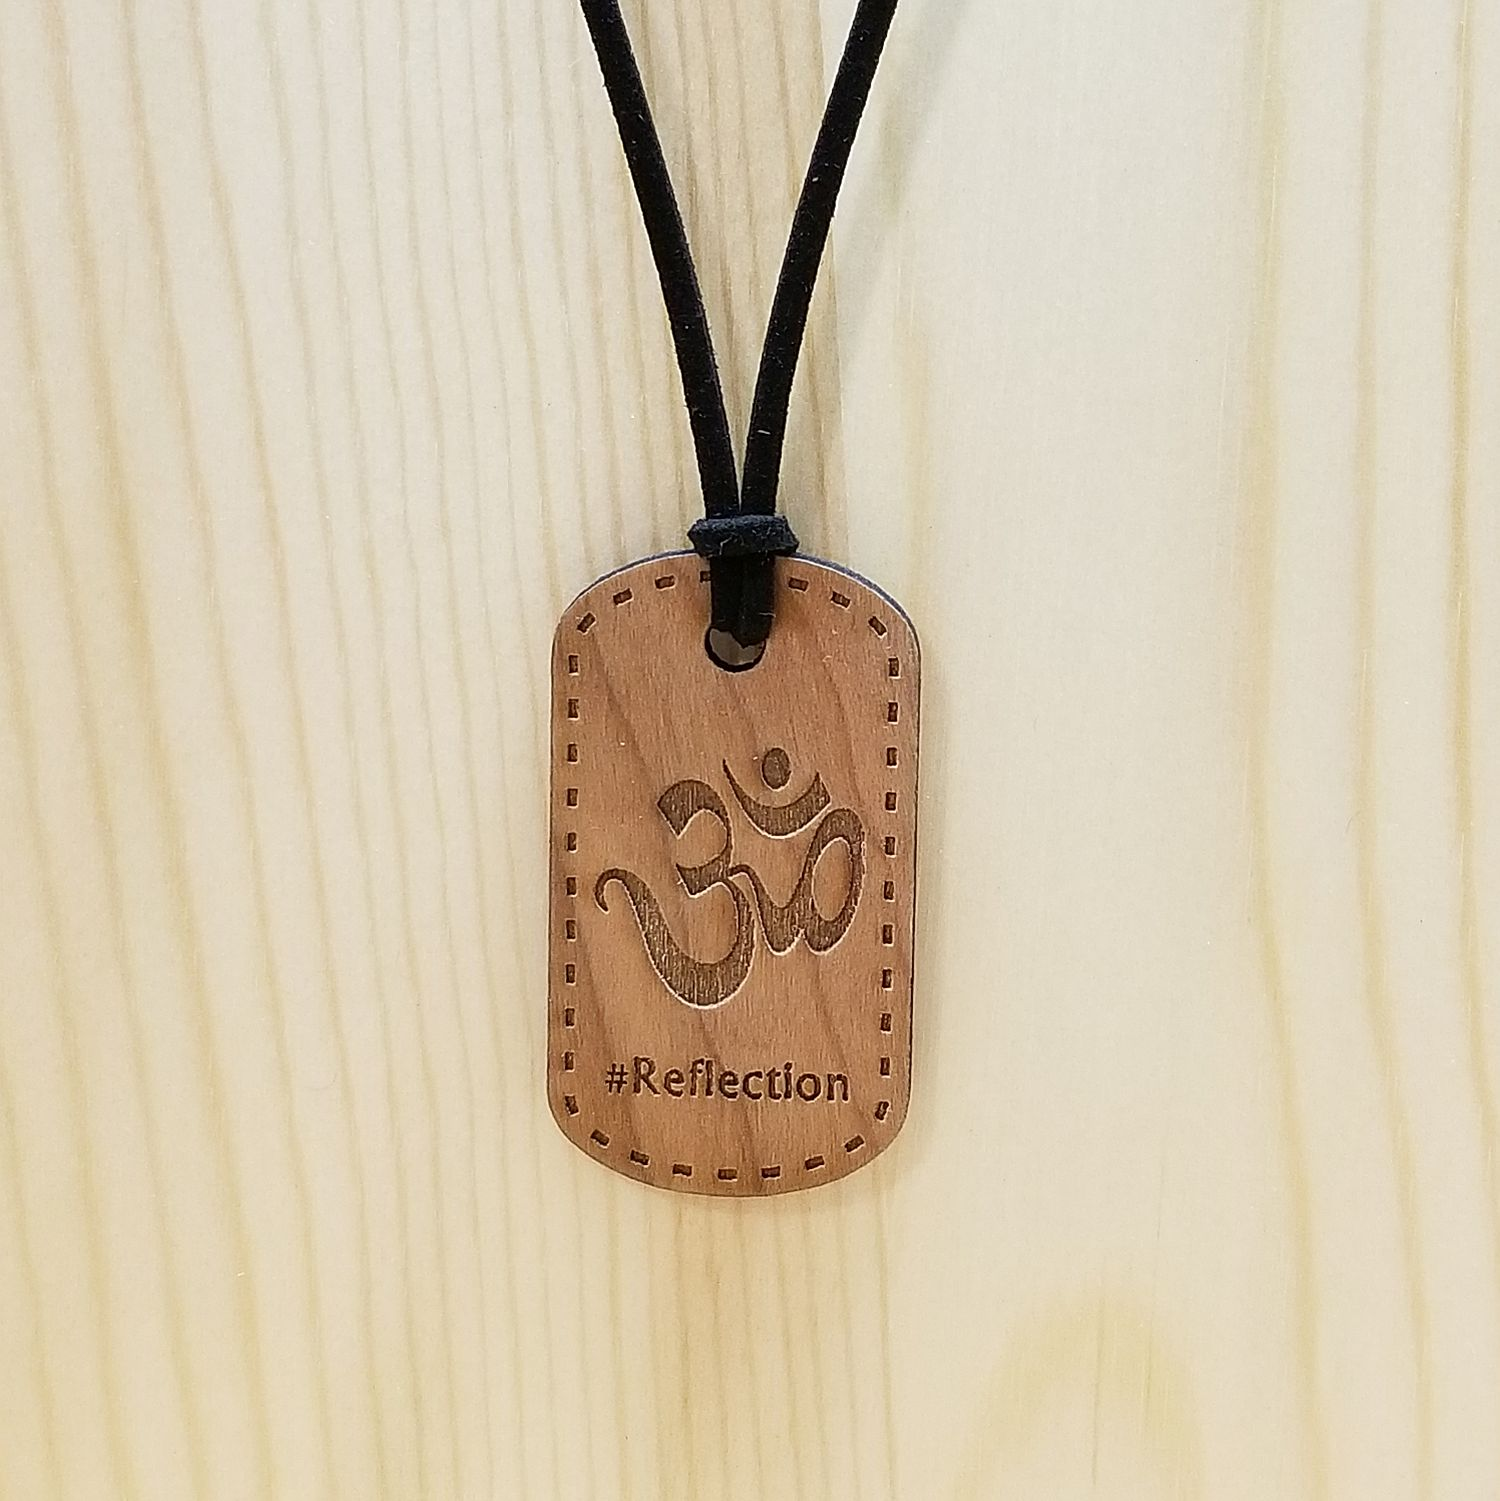 Reflection Hash Tag Pendant Necklace